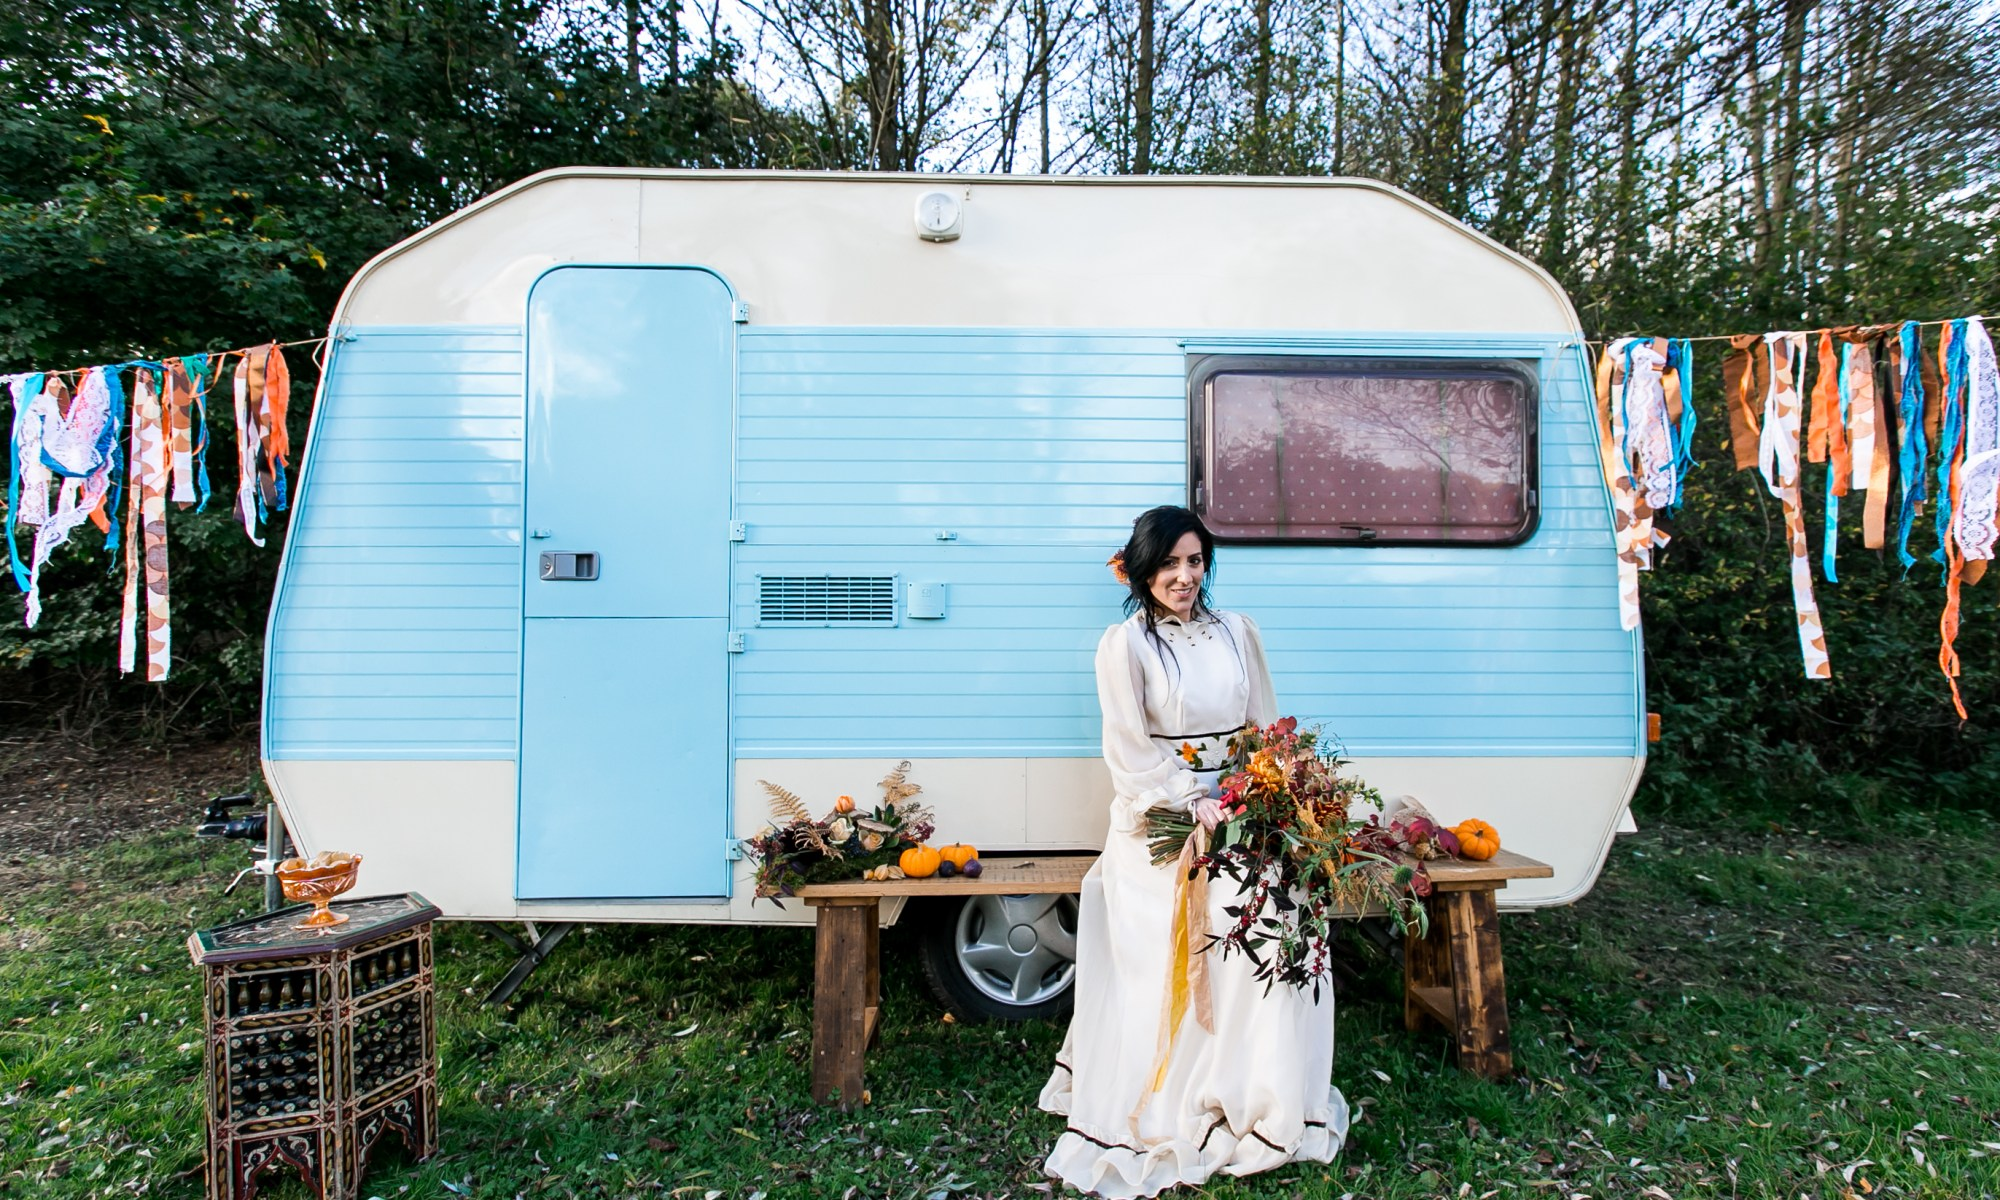 'winnie the vintage caravan', 'boho wedding venues essex', 'outdoor wedding venues essex', 'farm wedding venue essex', 'vintage wedding dress 1970s', 'lucky sixpence bridal wedding dress', 'orange and teal autumn wedding', 'autumn wedding colour ideas', 'biggest wedding trends of 2018', 'boho wedding trends 2018', 'alternative wedding photographer essex', 'autumn wedding bouquet ideas'